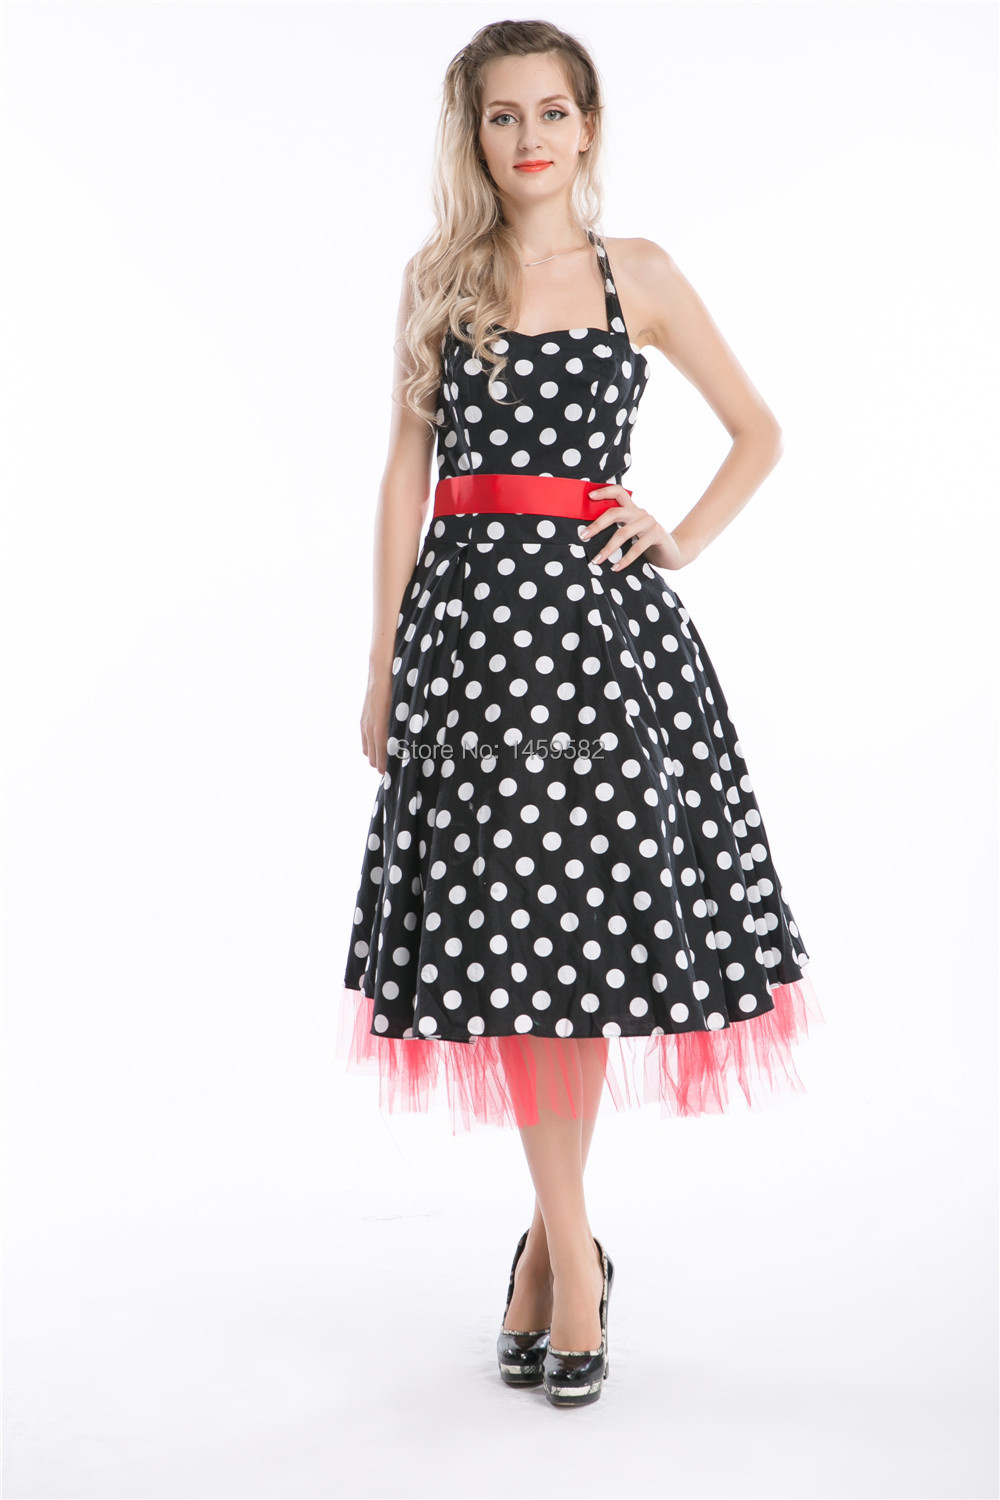 b85a28f77f91 free shipping walsonstylesVintage Rockabilly Polka Dot Retro Swing 50s 60s  pinup Housewife Dressinstyles-in Dresses from Women s Clothing on  Aliexpress.com ...